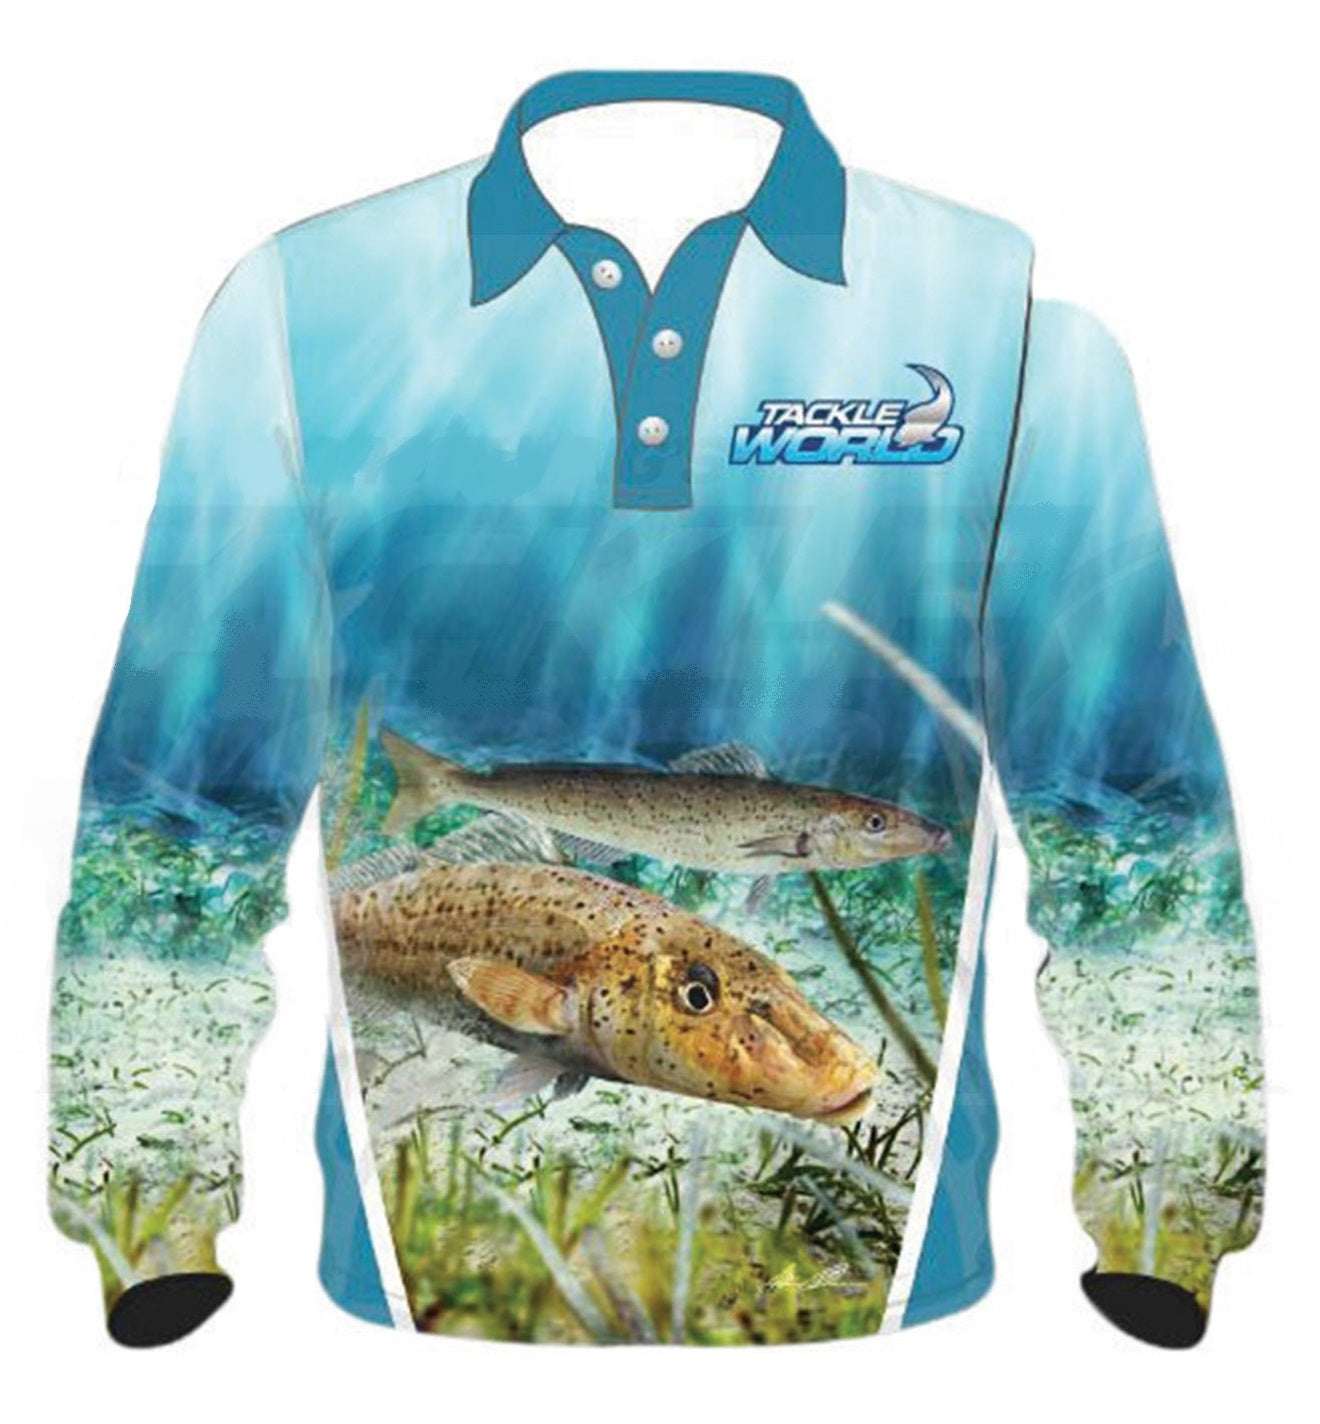 Tackle World Whiting Adult Long Sleeve Fishing Shirt Jersey